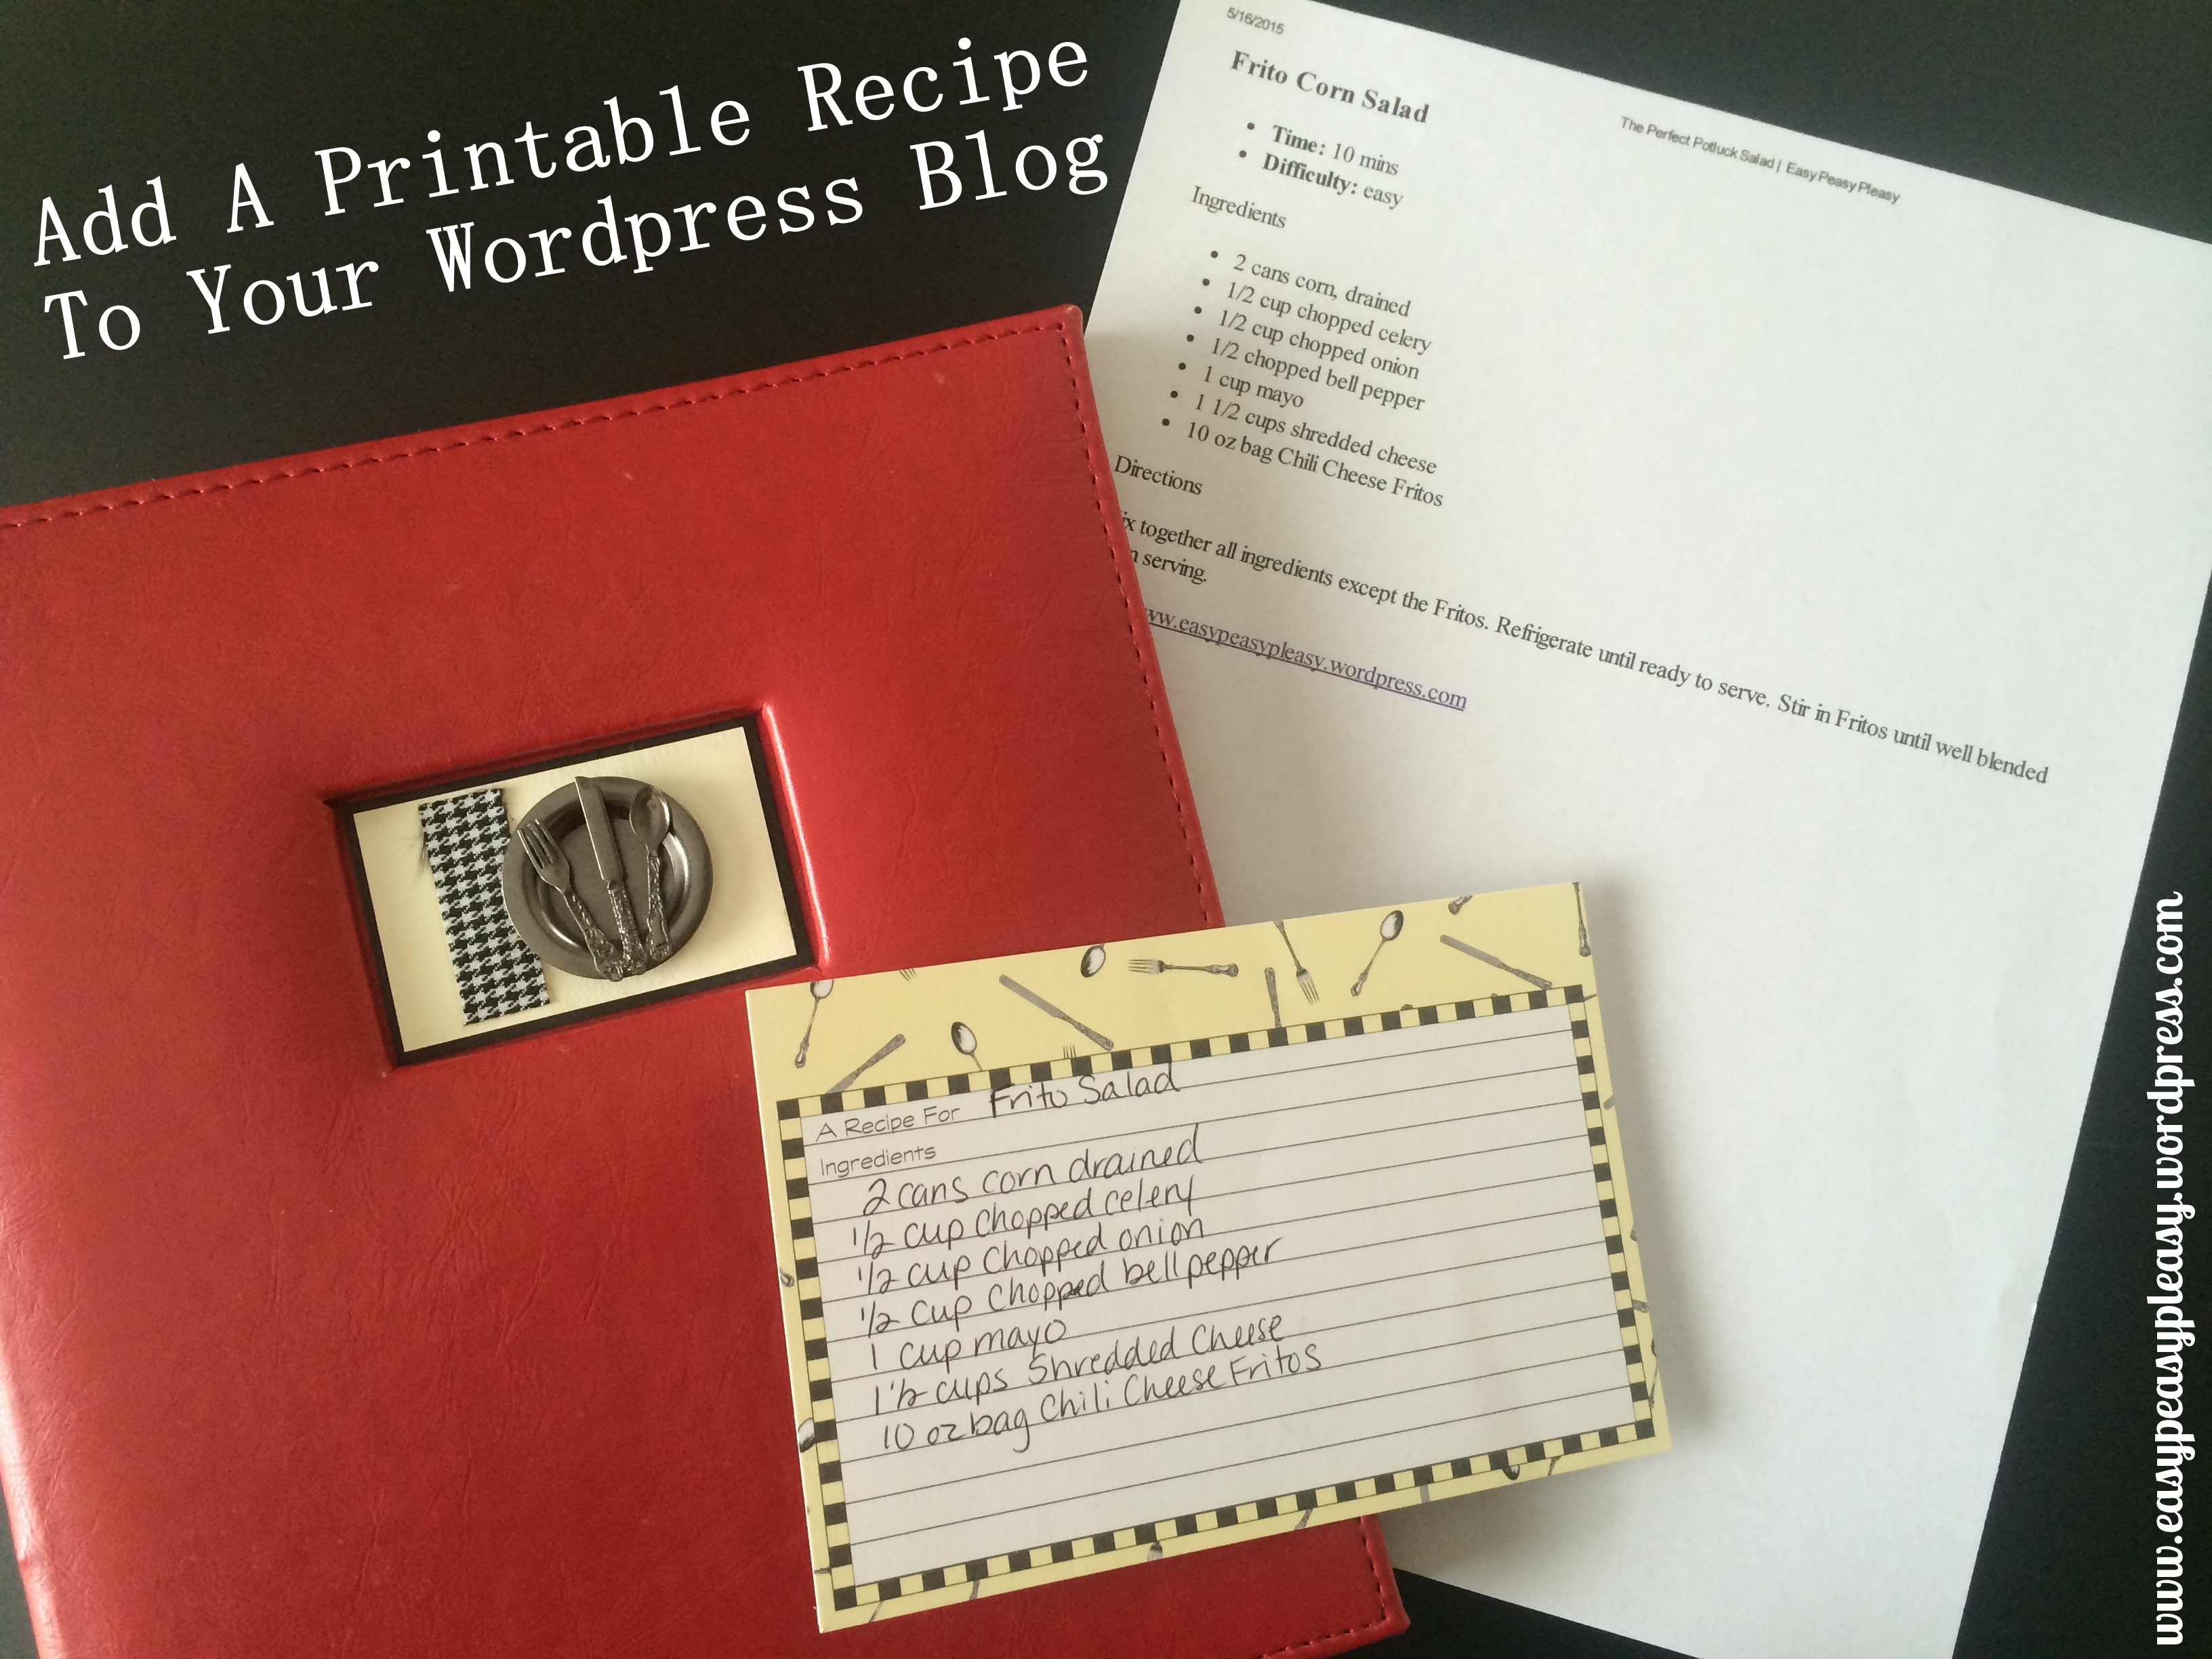 This is a tutorial on how to add and embed a printable recipe on WordPress.com